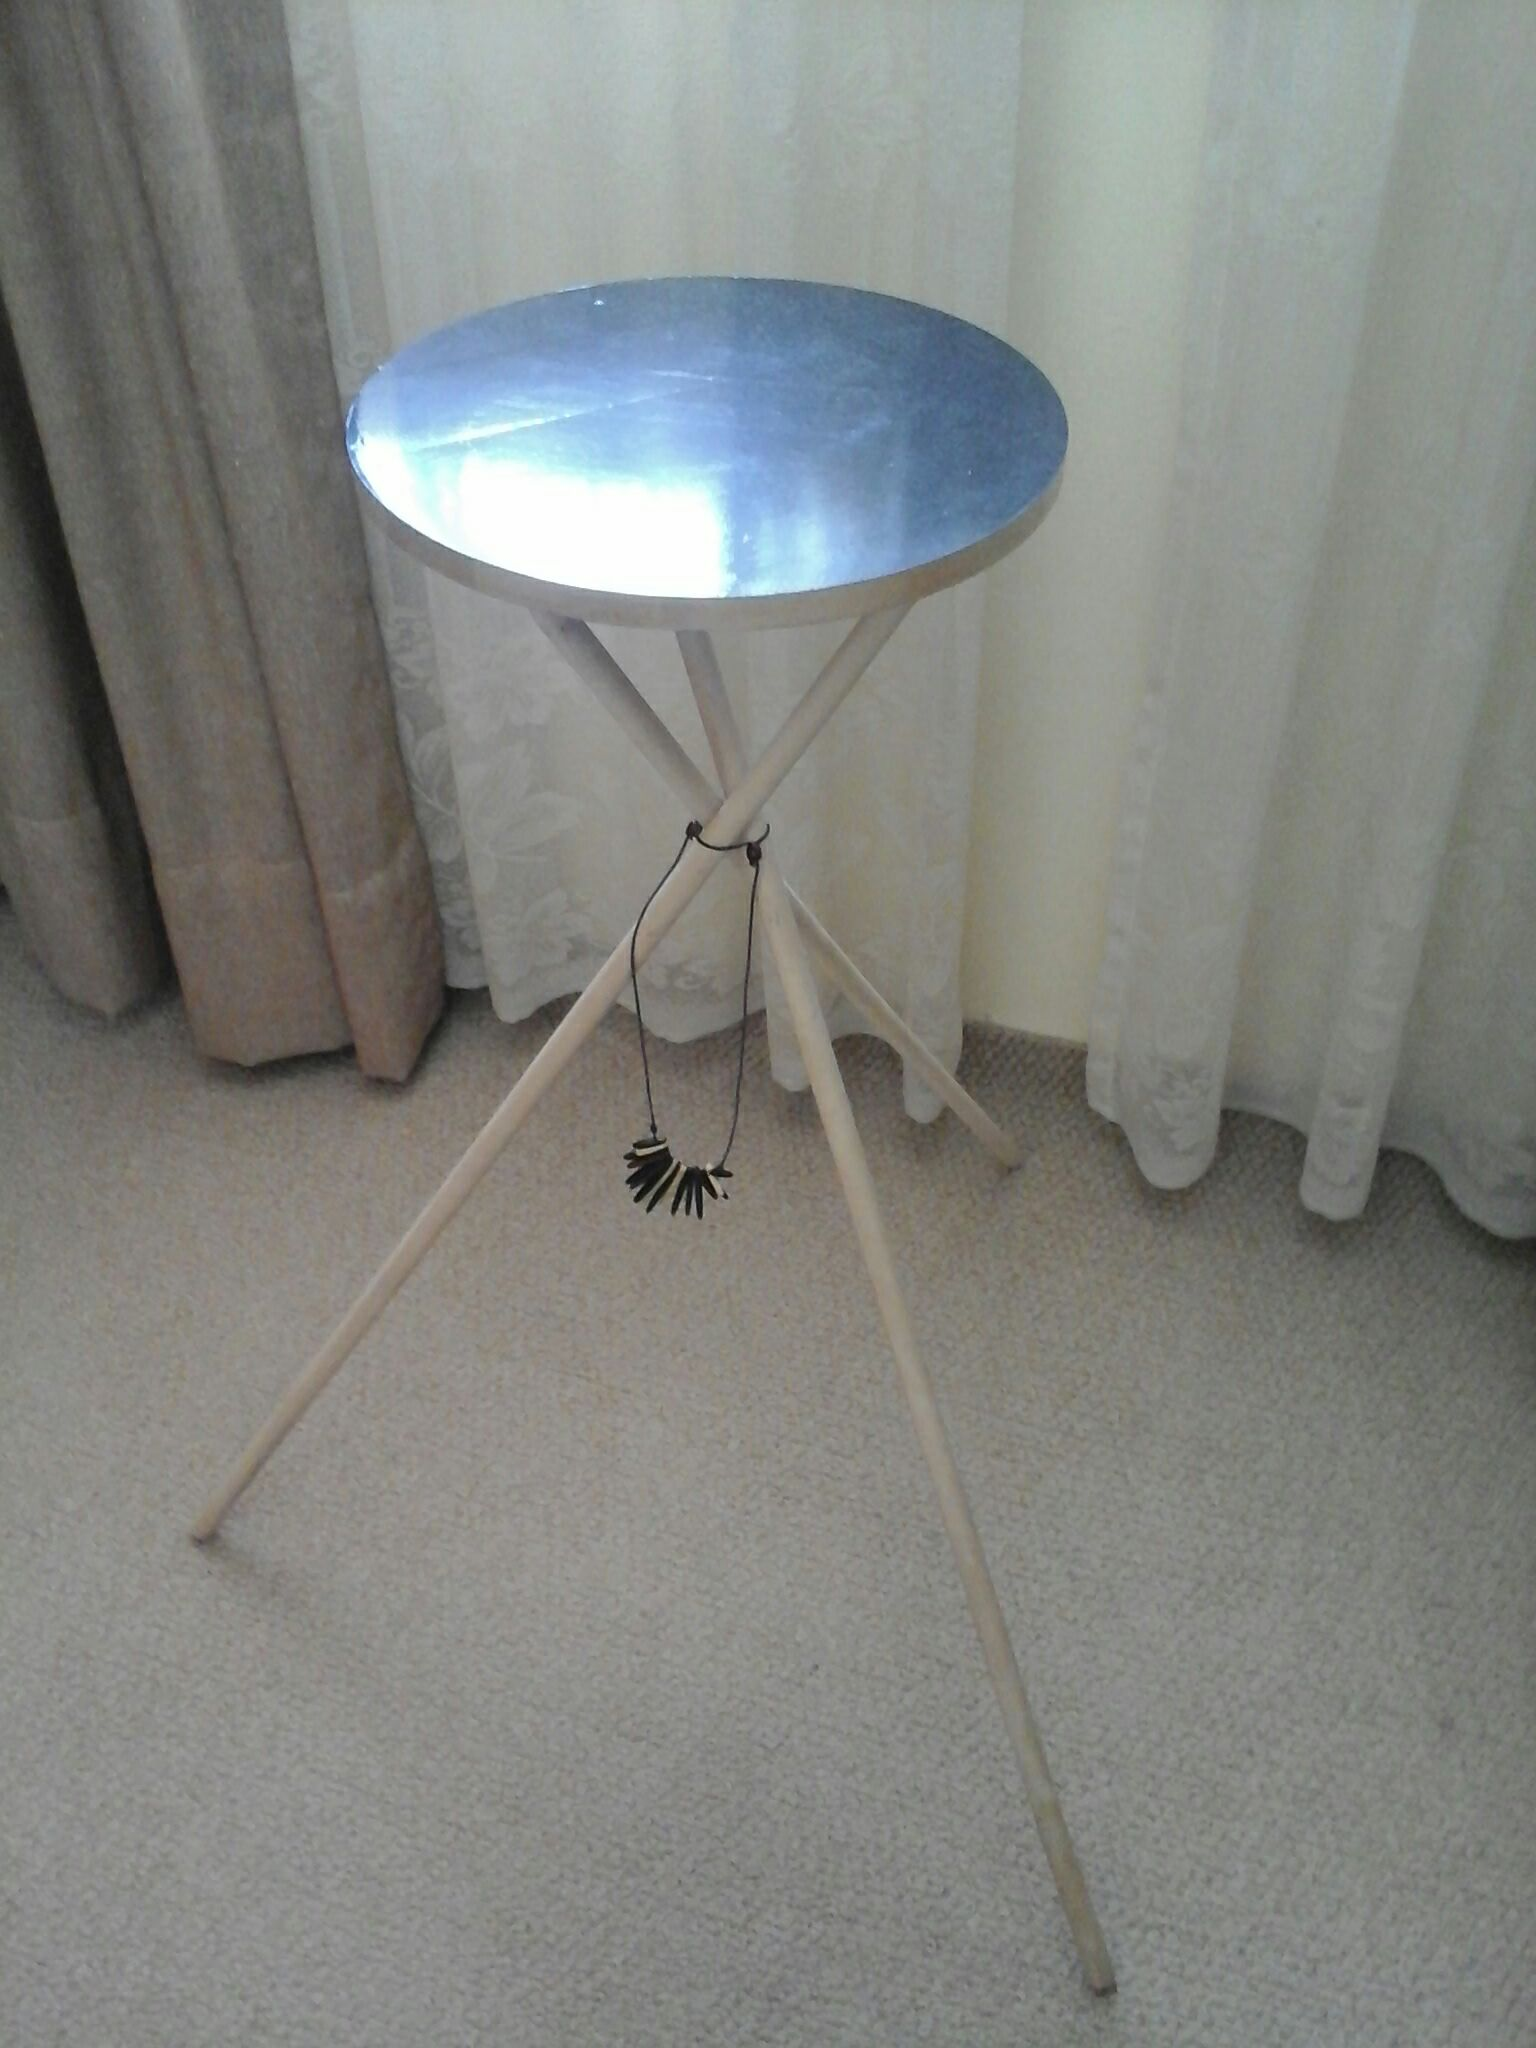 Picture of Mesa Para Las Cosas Diarias, Small Table for Daily Things